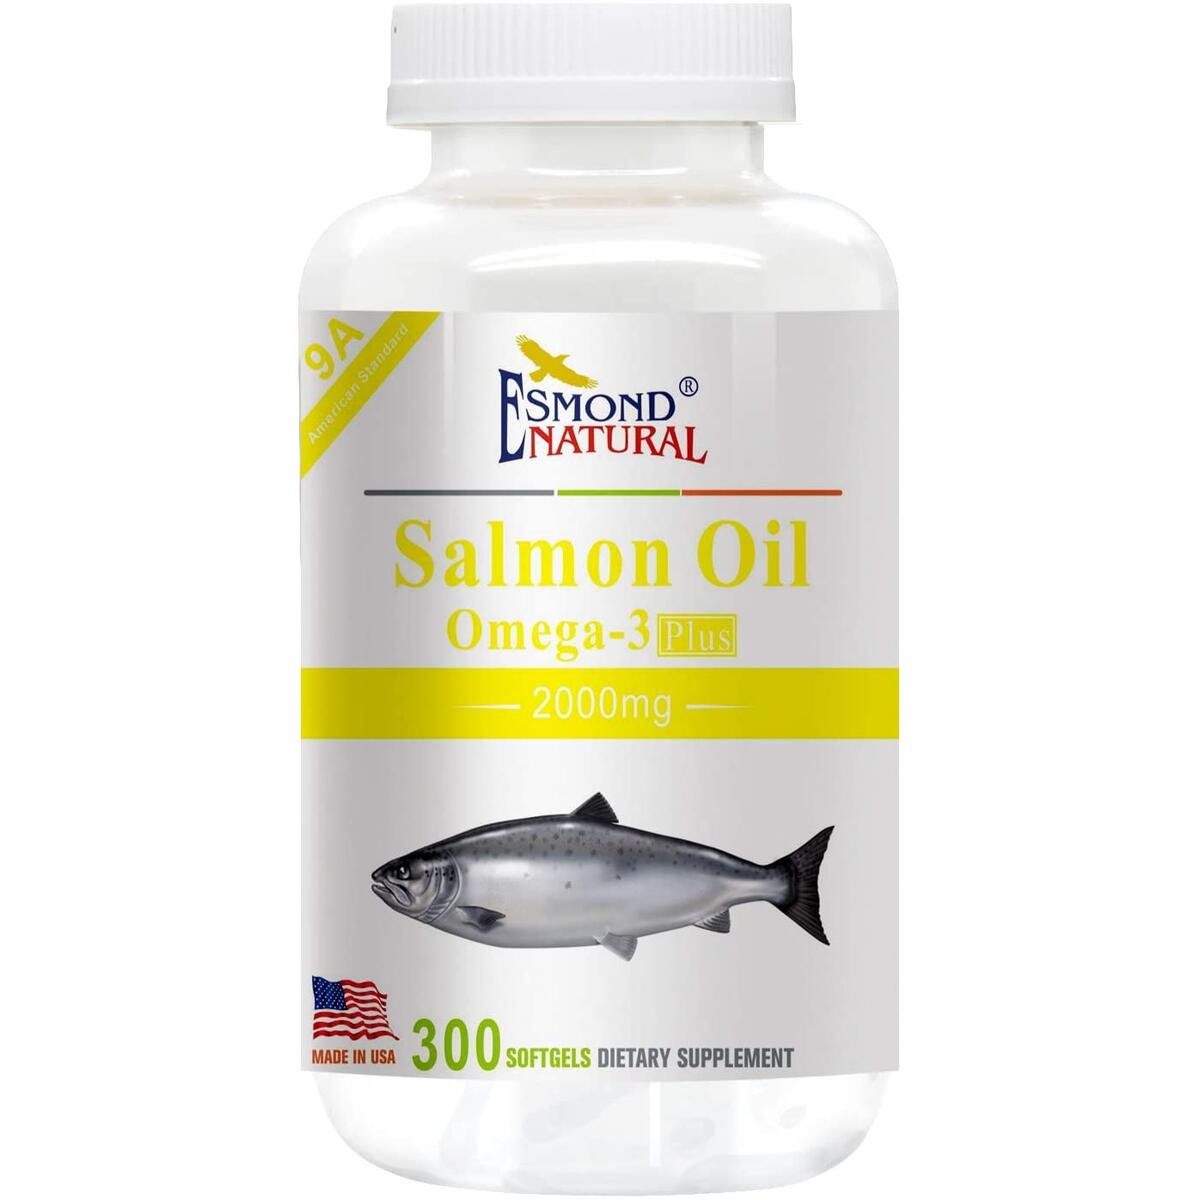 Esmond Natural: Salmon Oil (Omega-3 Plus), GMP, Natural Product Assn Certified, Made in USA-2000mg, 300 Softgels